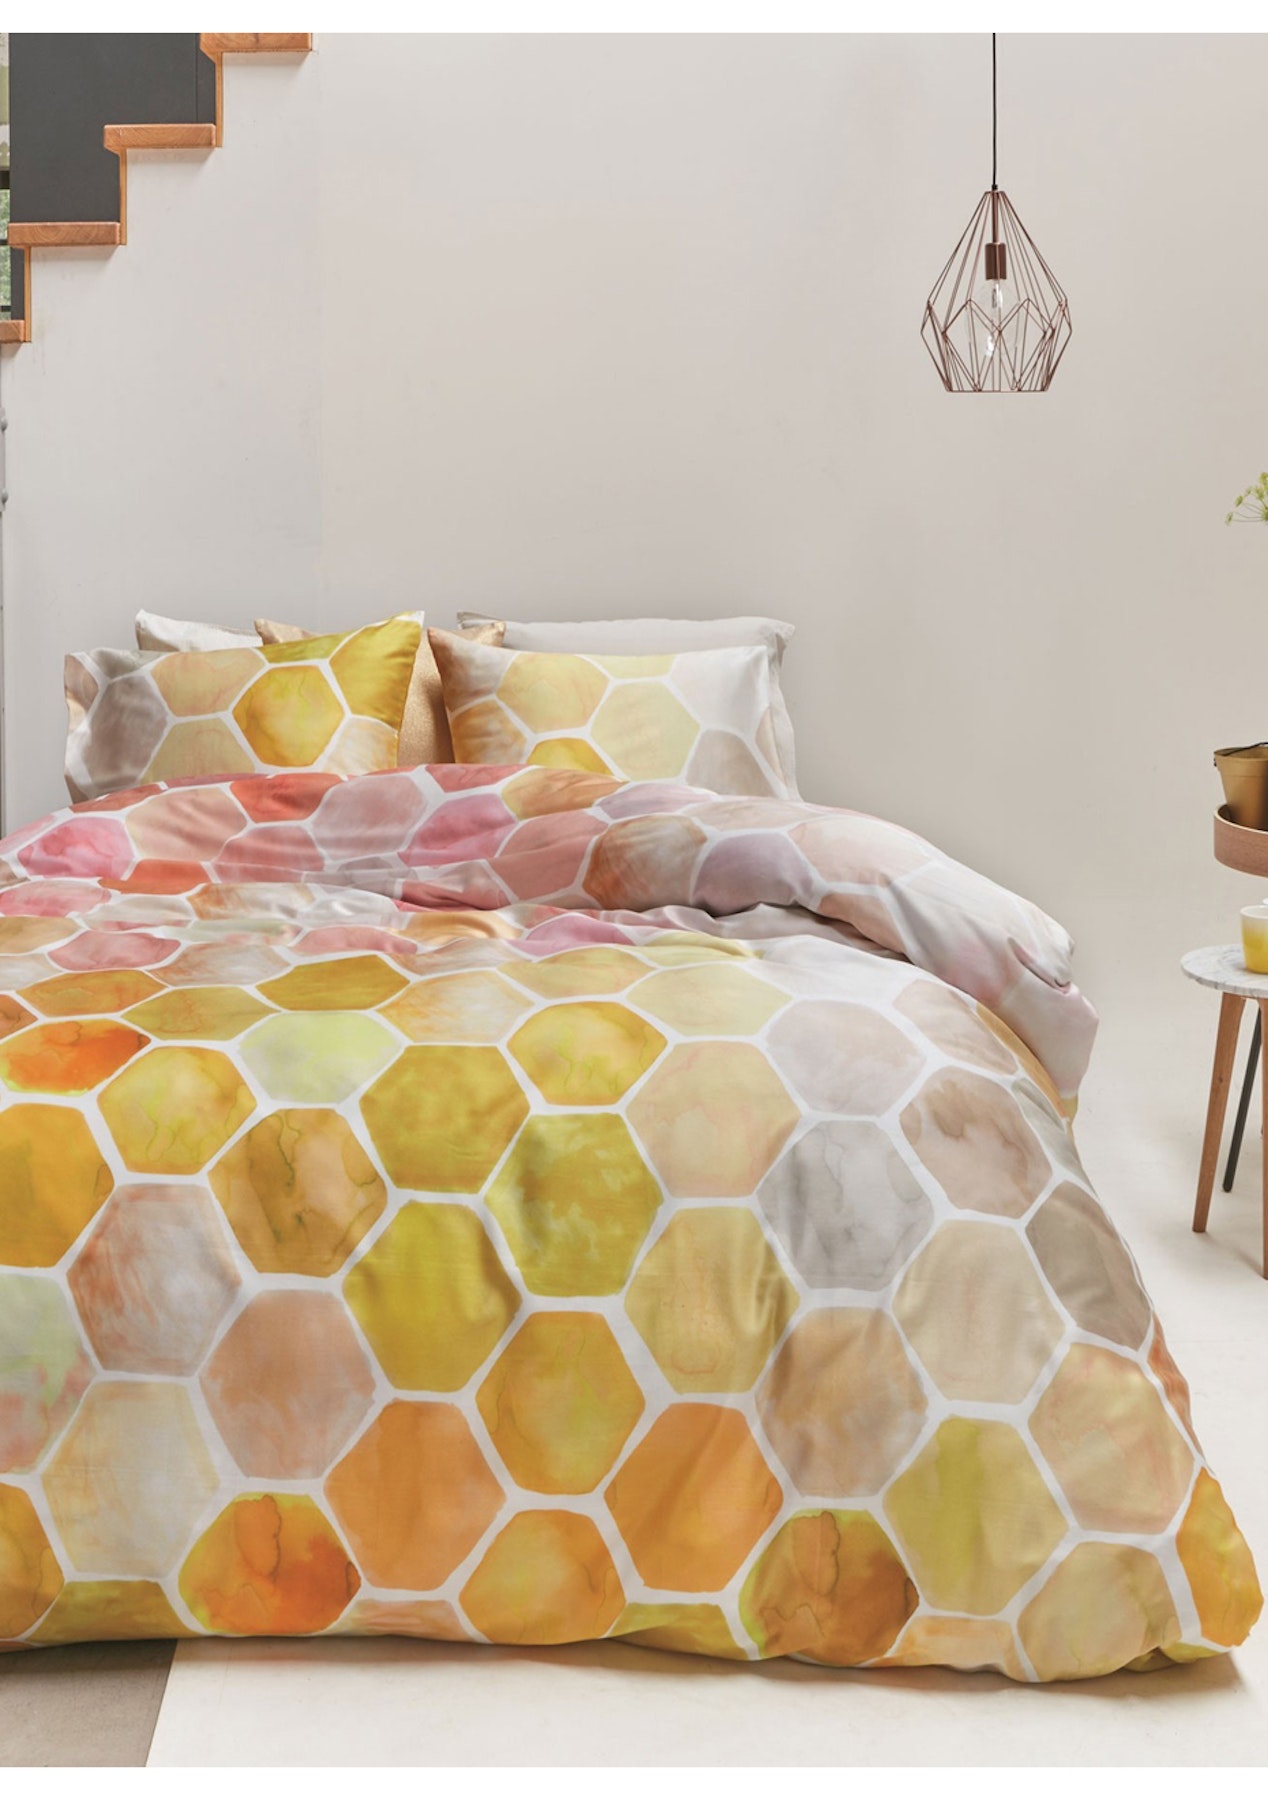 geometric buy backing love a sheet that spot set bag in comforter bed amazon on today queen with cover youll yellow top bedding best full duvet